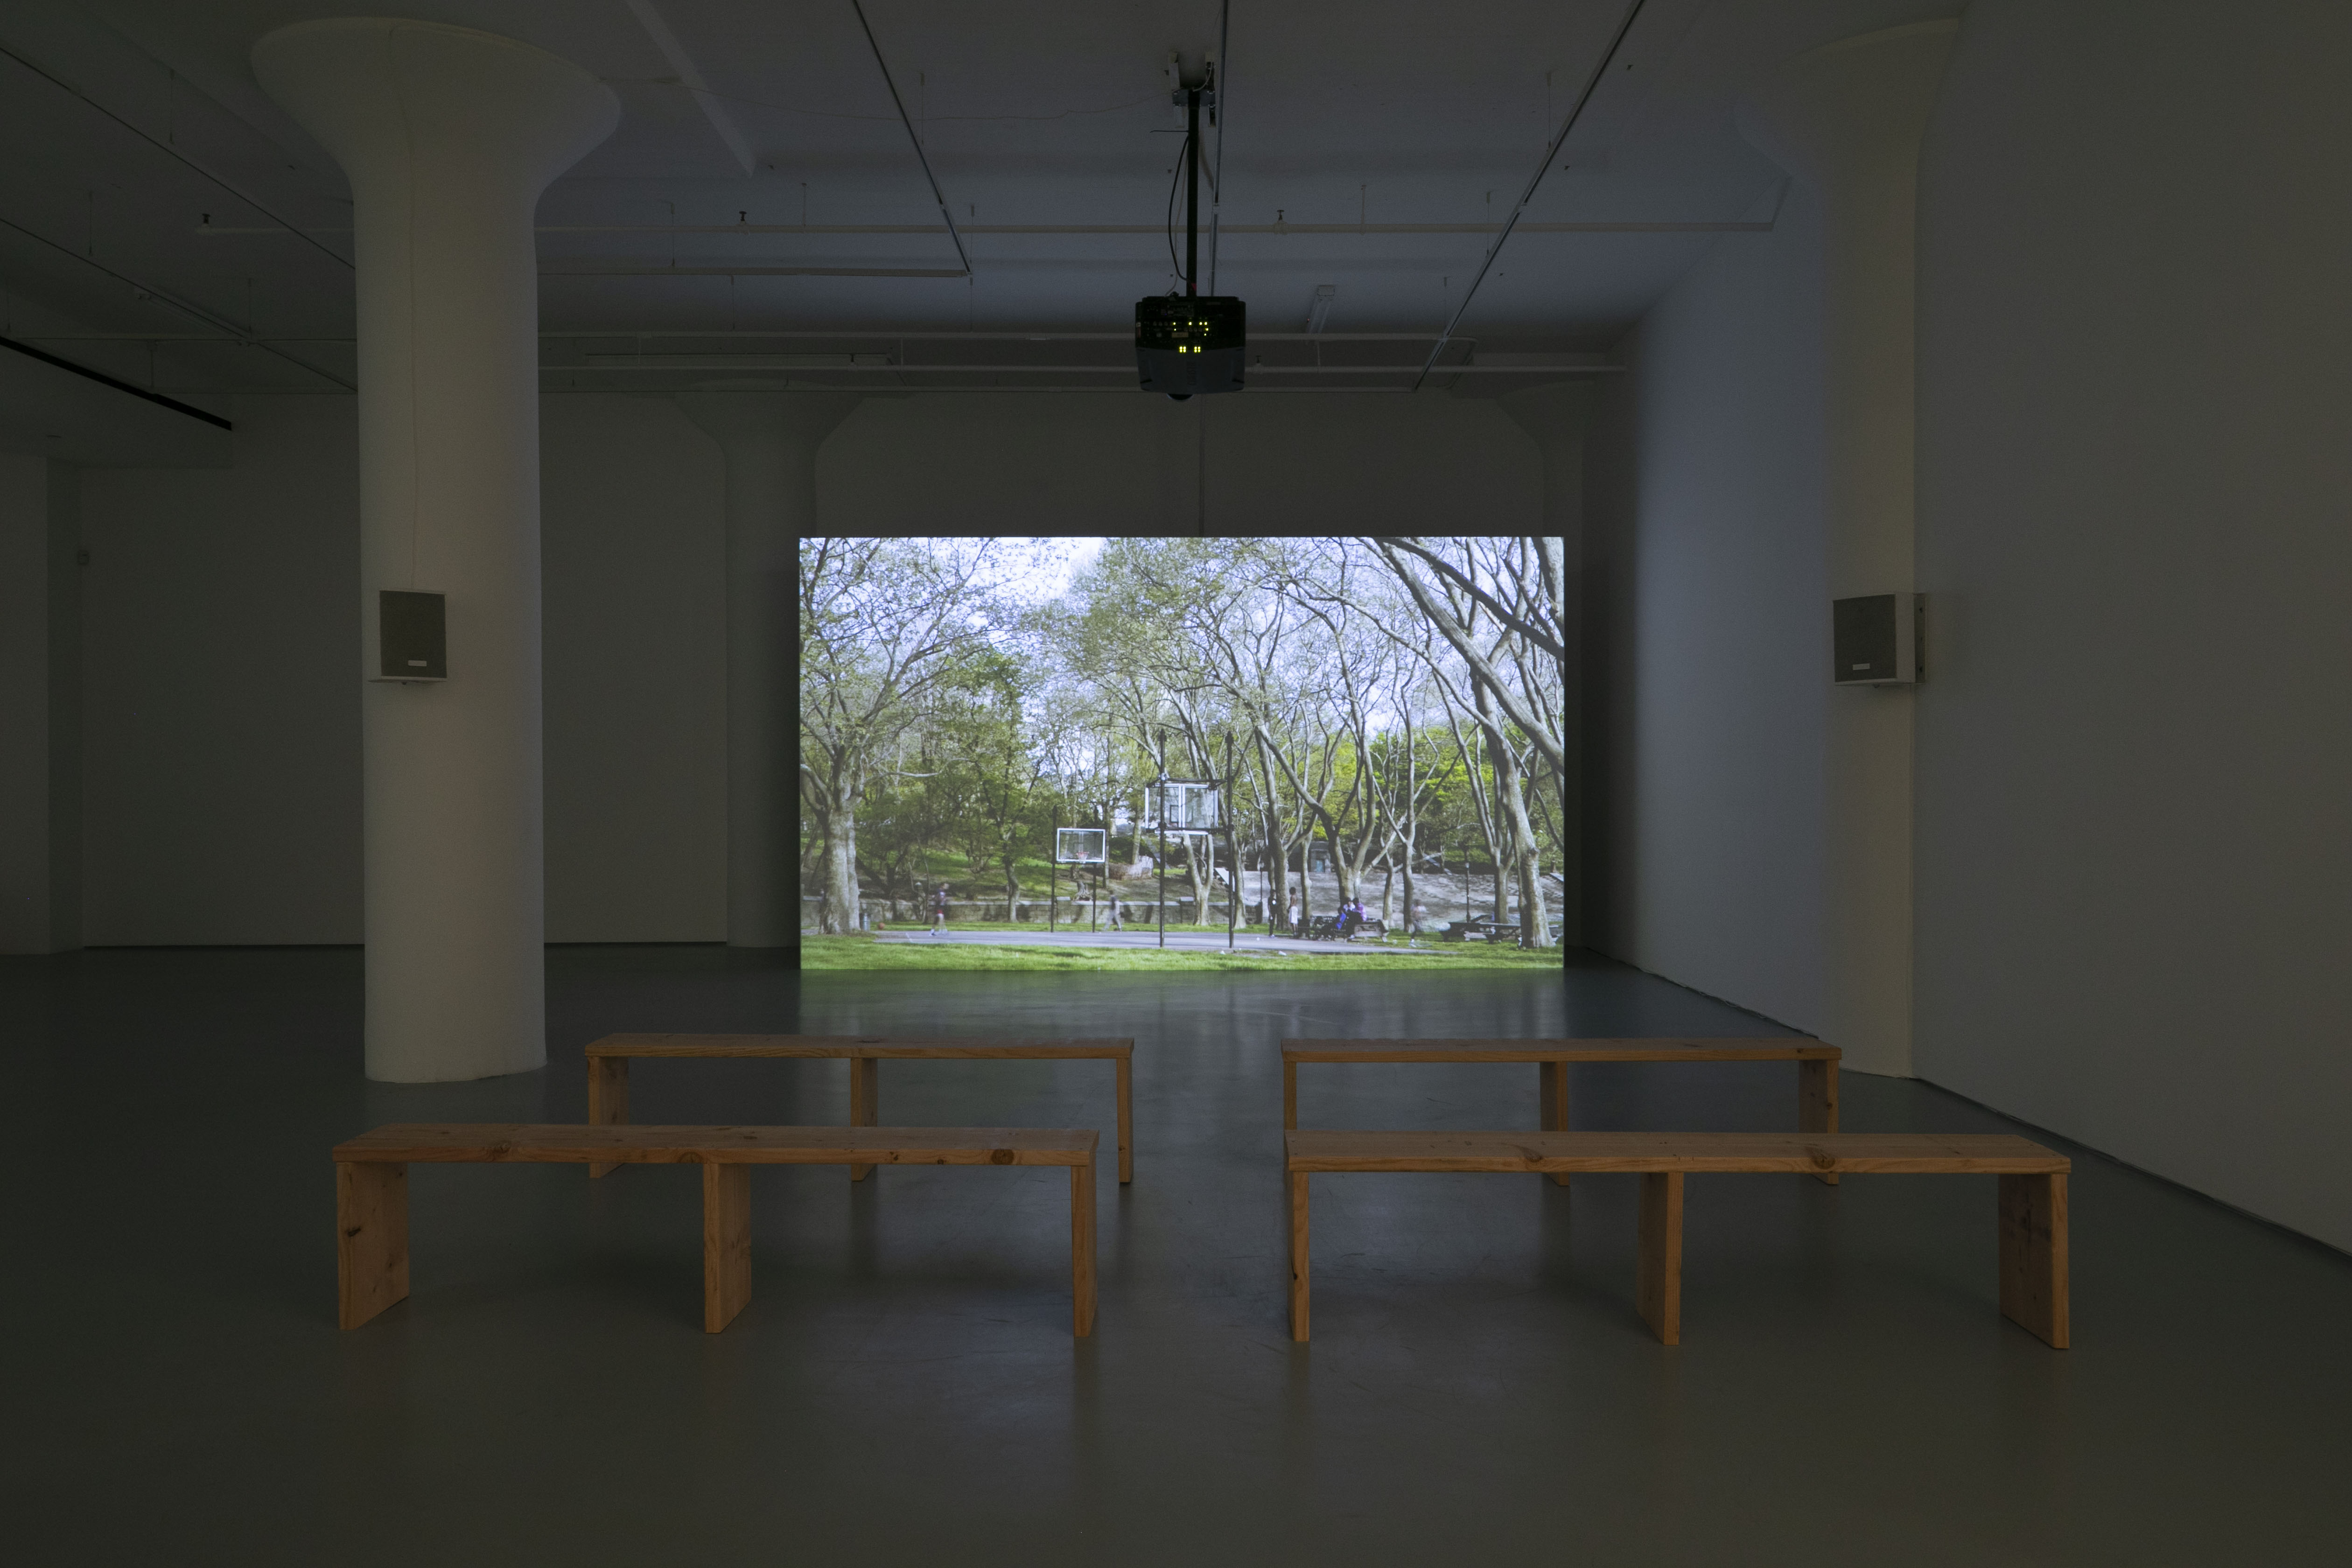 Photograph 2 from Ari Marcopoulos. Films. Photographs.  exhibition.